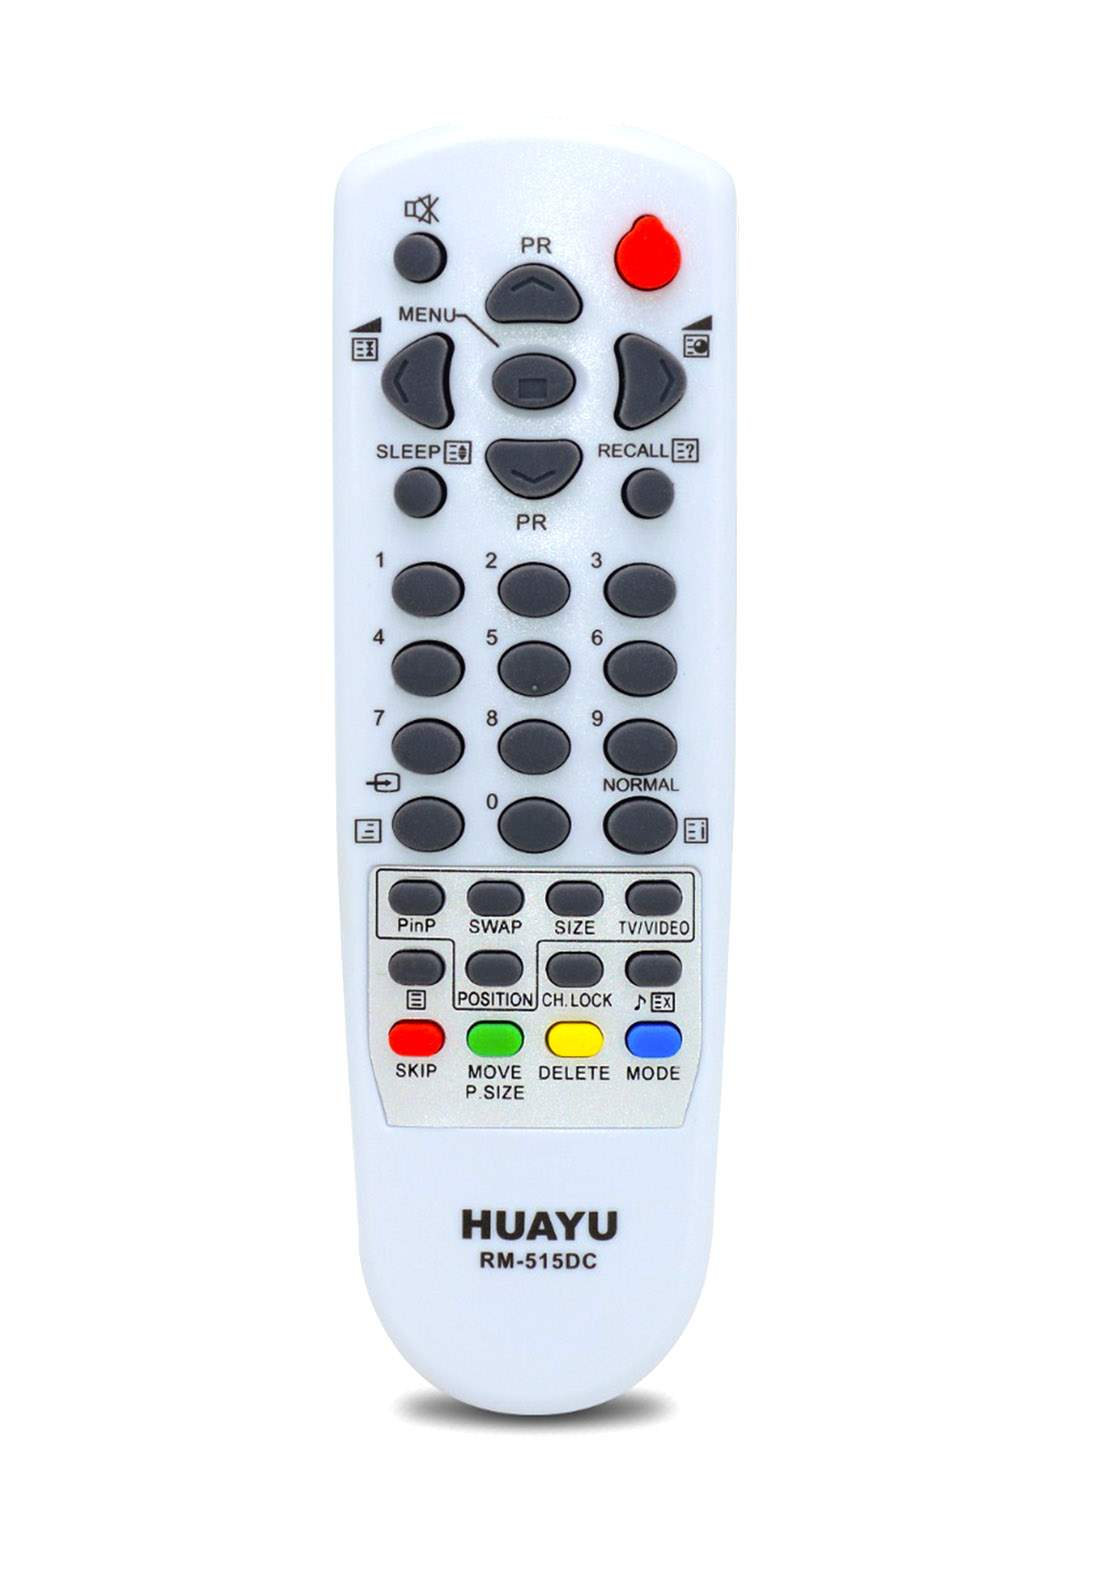 HUAYU Remote Control For Daewoo TV  - White جهاز التحكم عن بعد